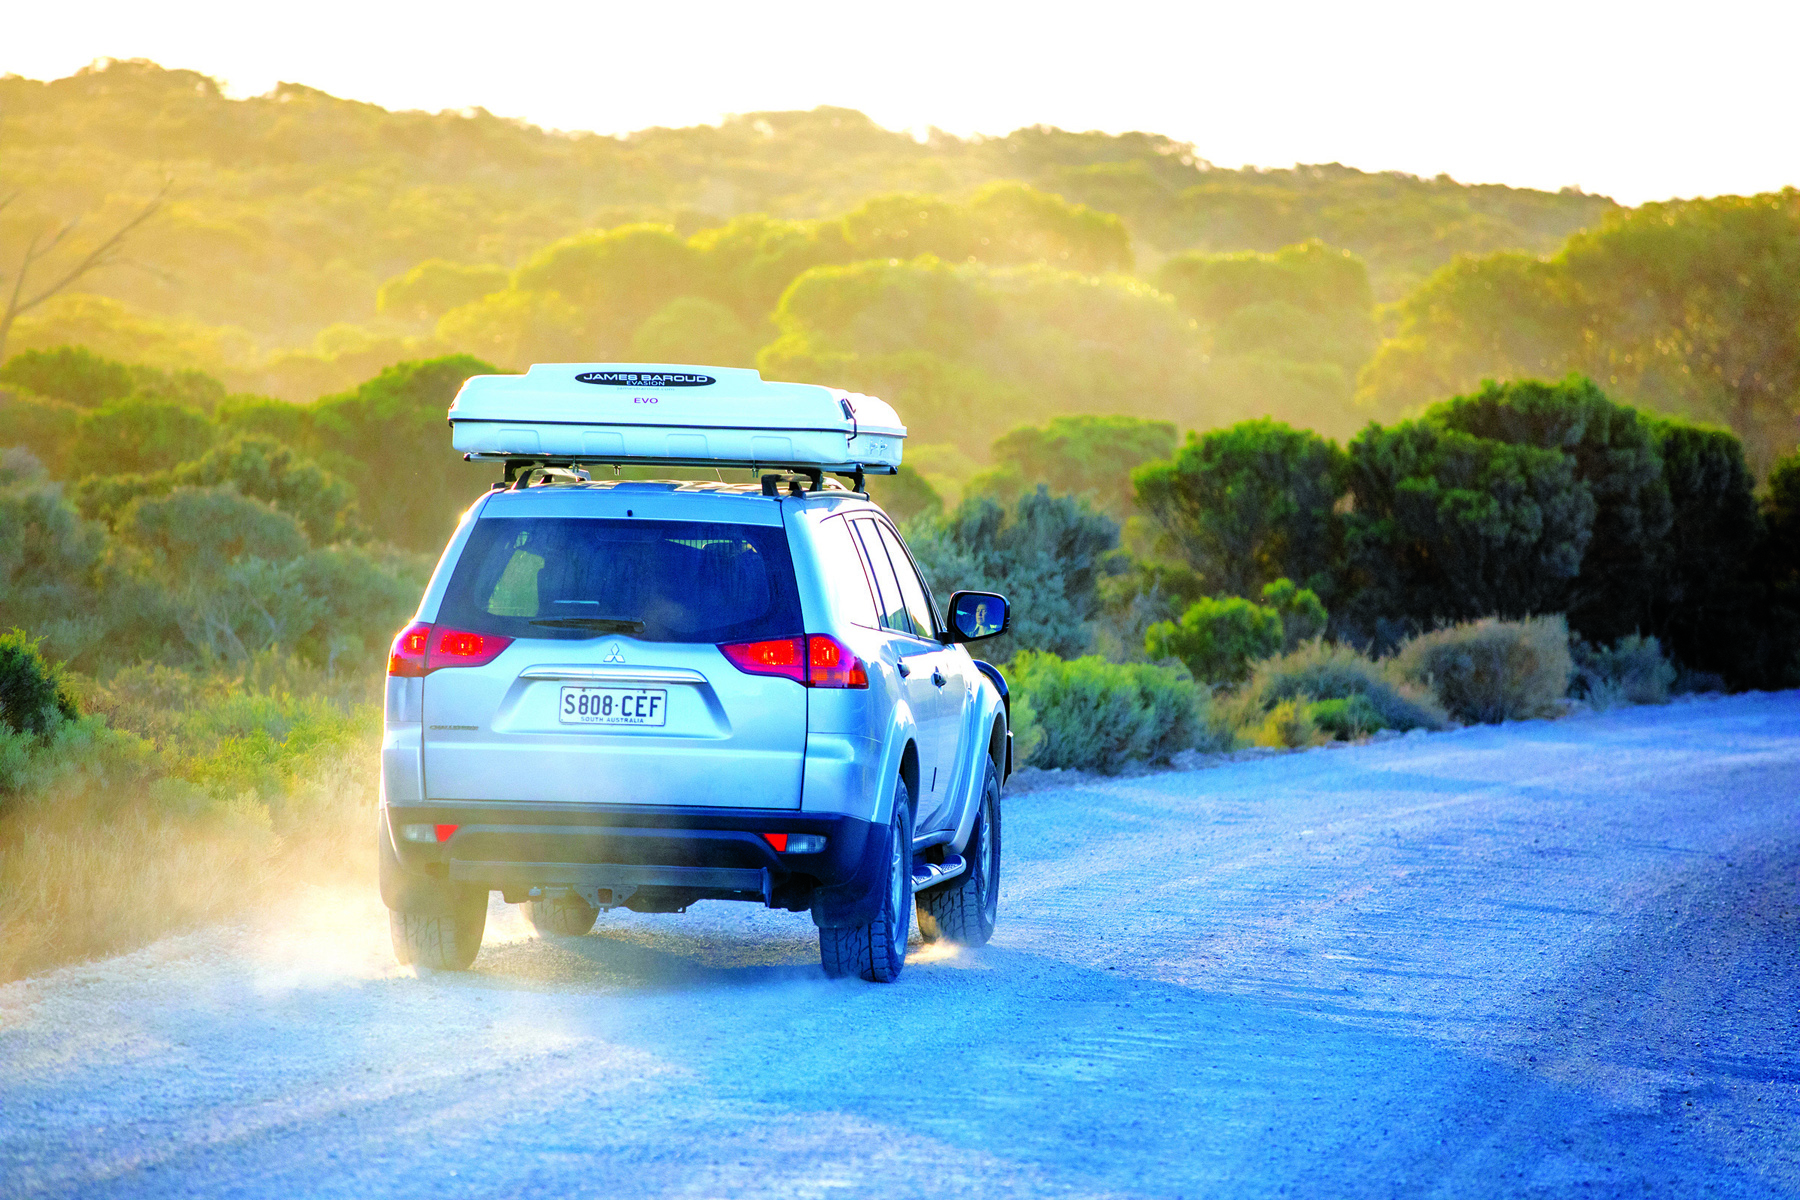 4WD with the james Baroud RTT driving down a dirt road